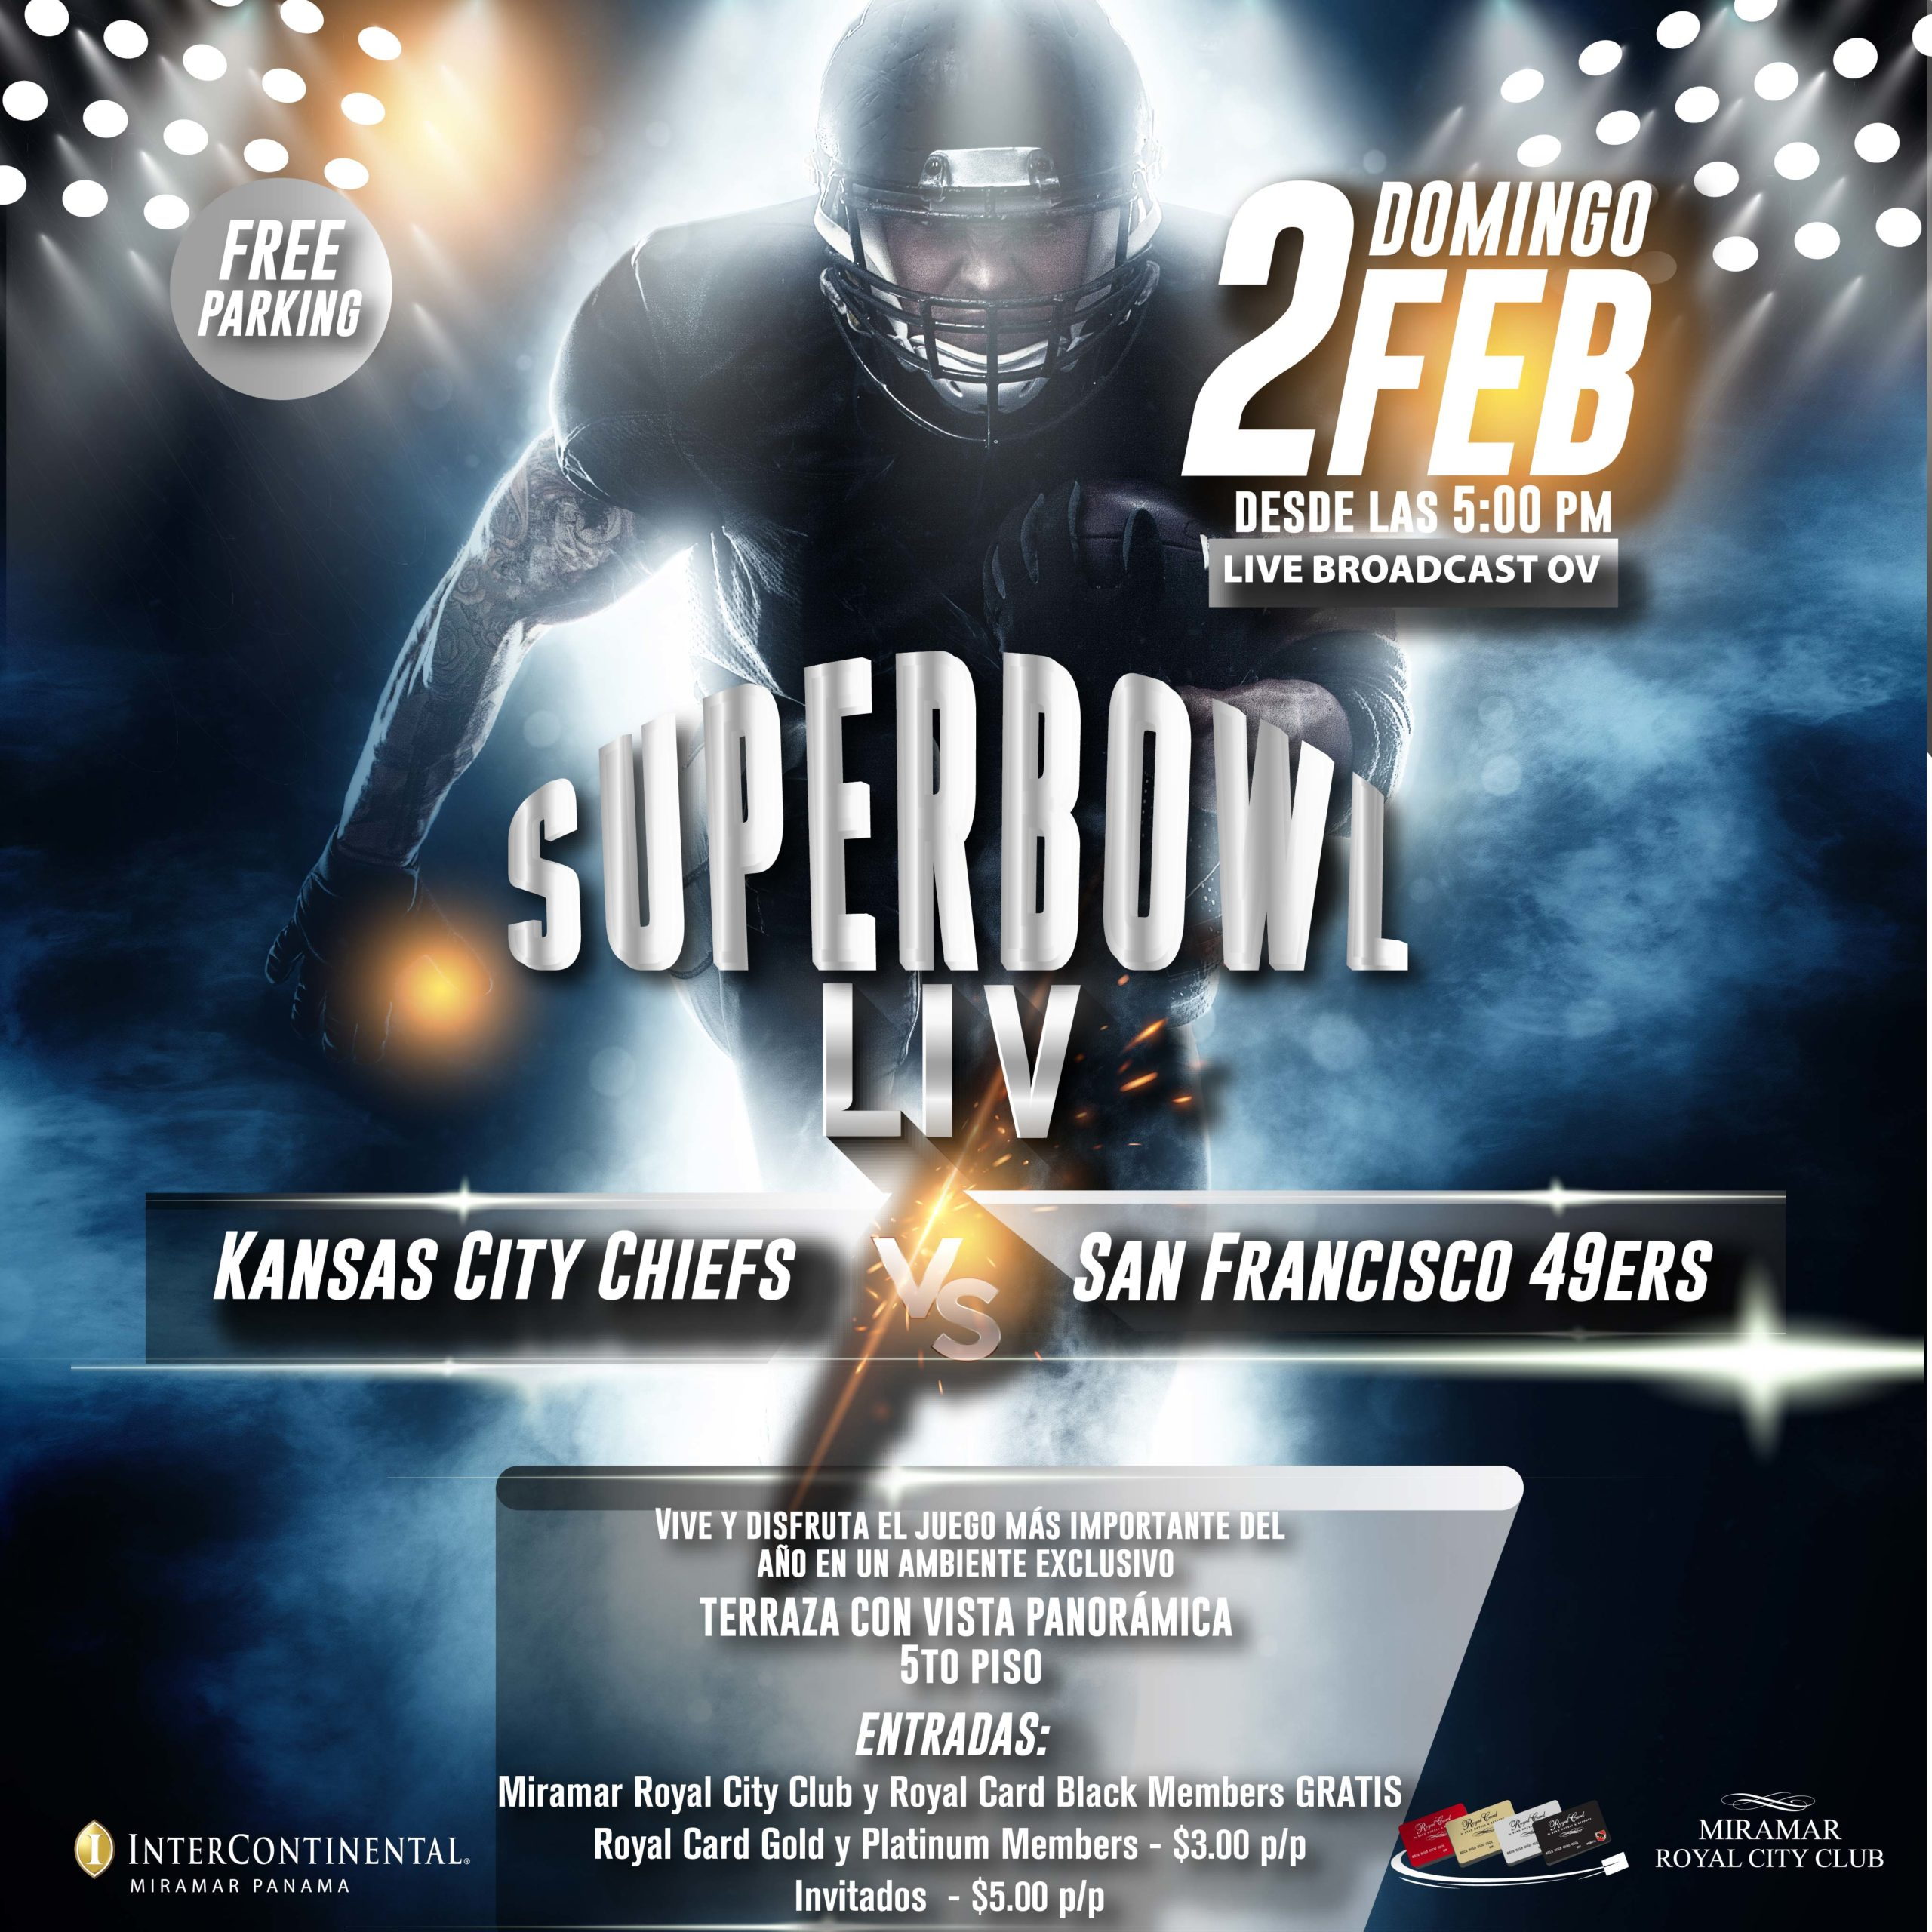 Super Bowl @ Intercontinental, Miramar Panama